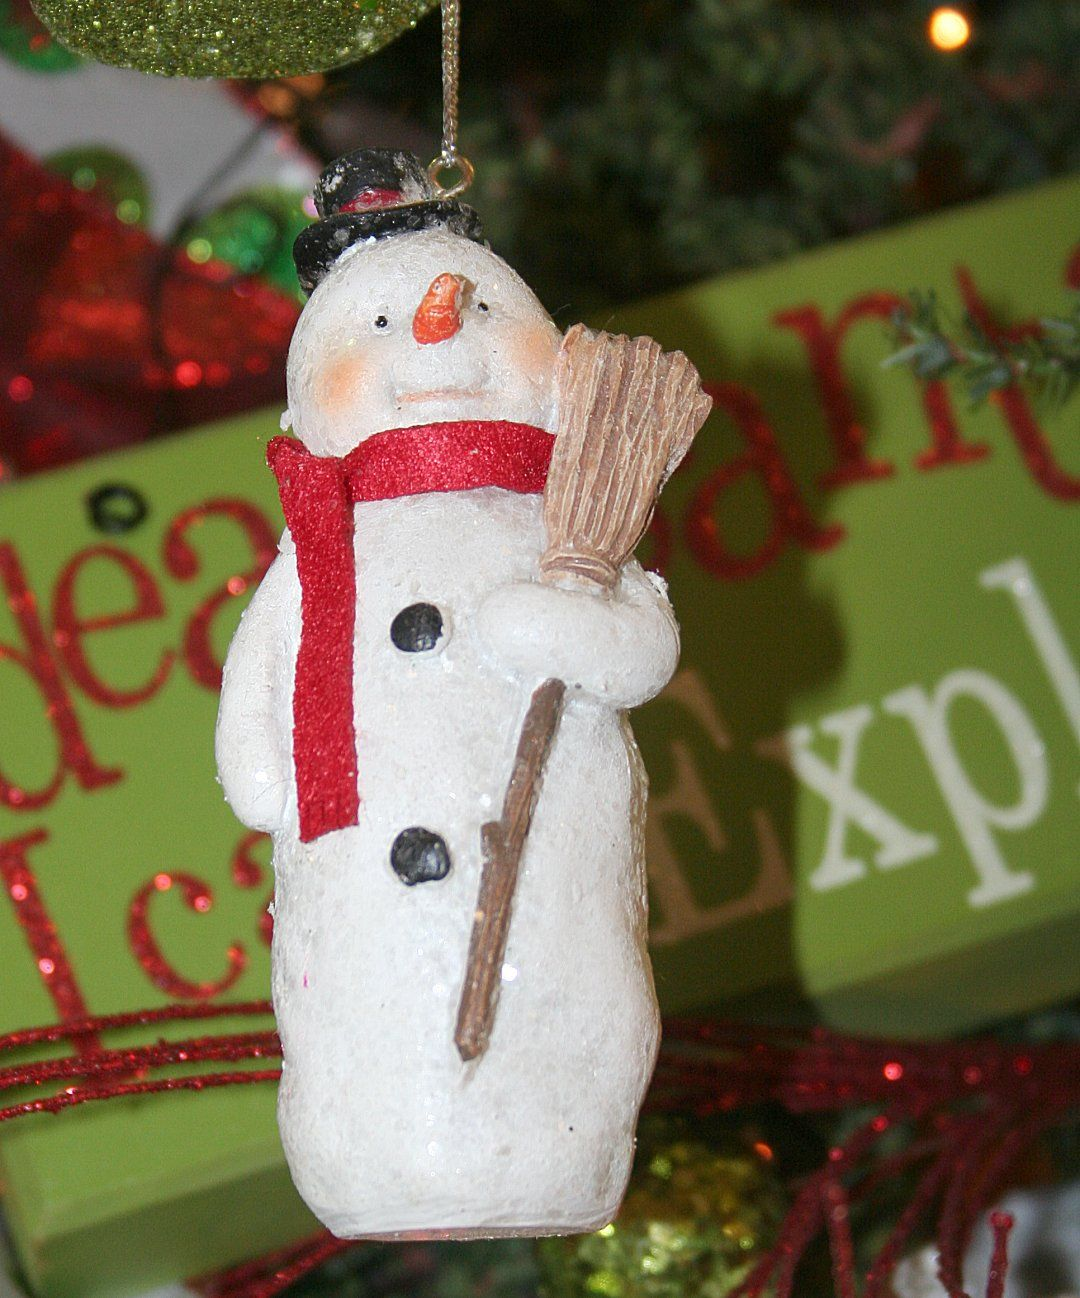 Snowman ornament from Warmbier Farms Christmas ornaments